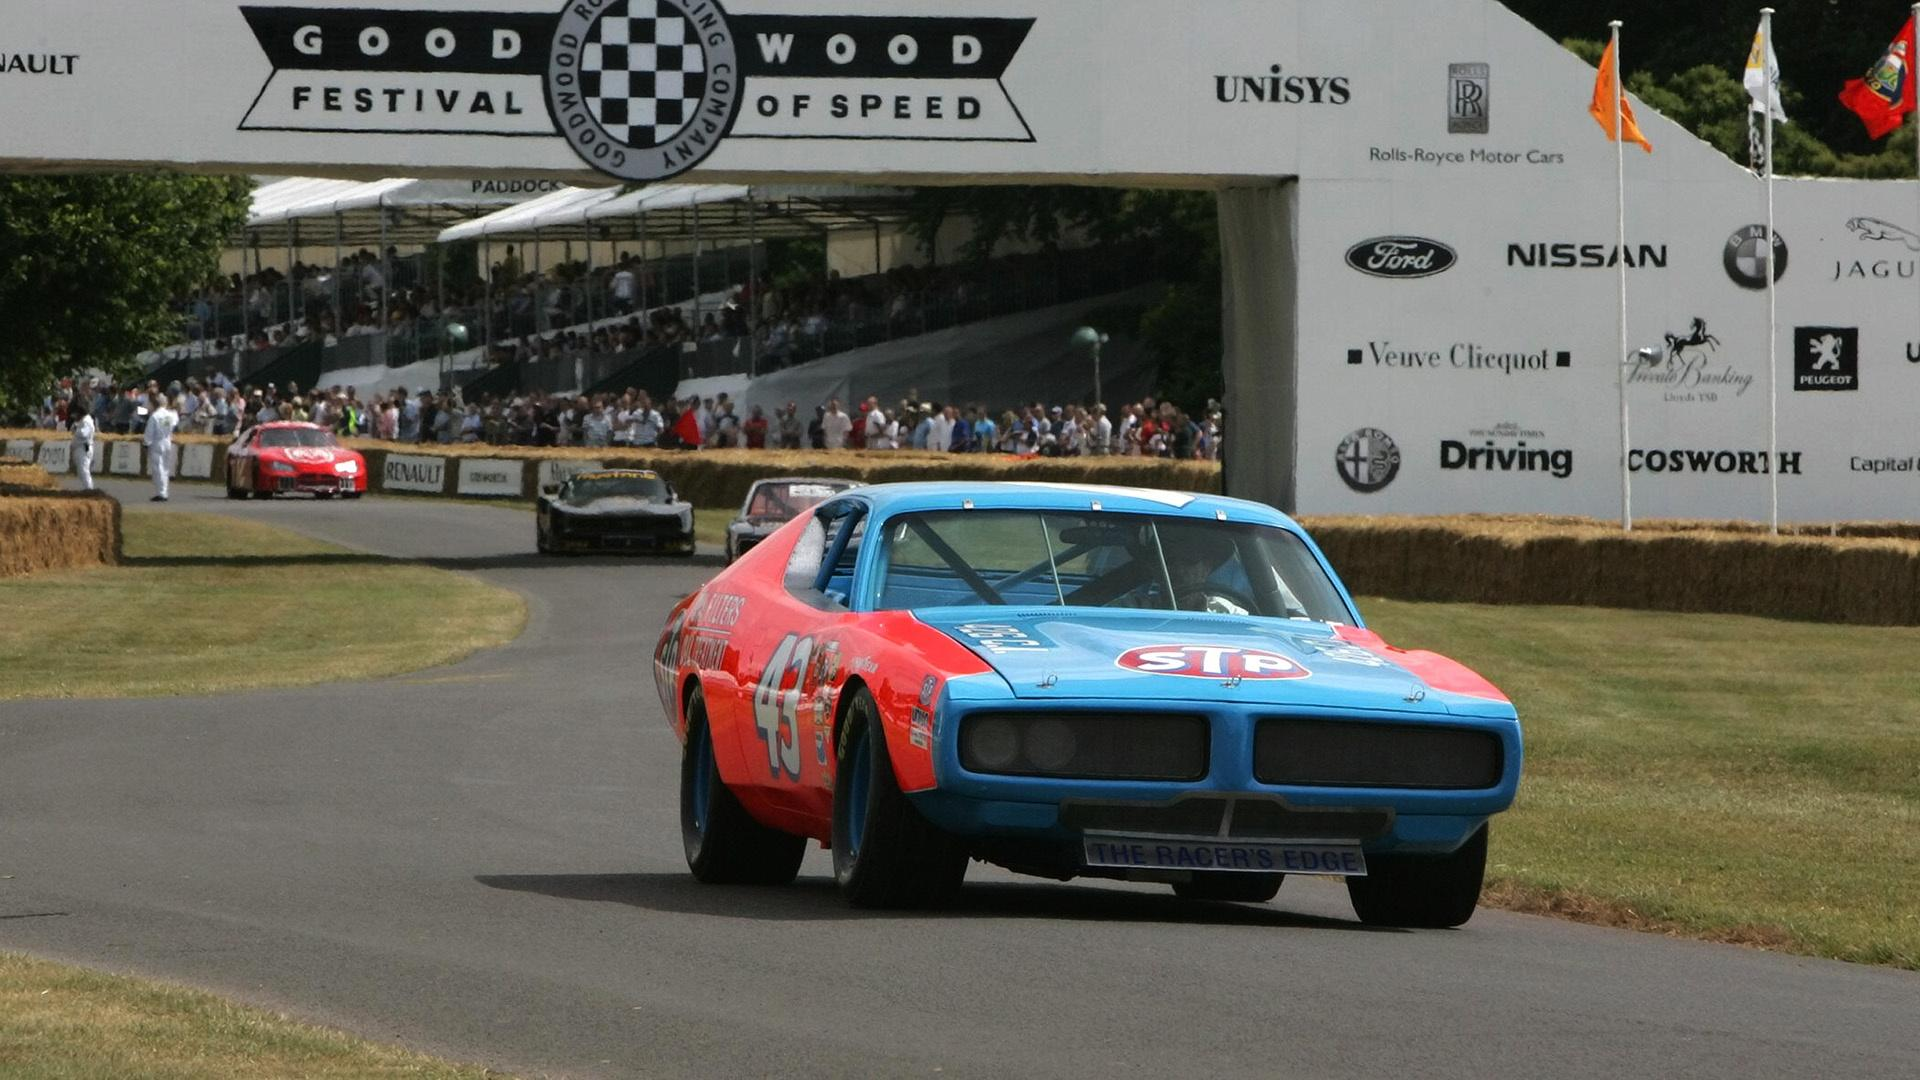 1972 Dodge Charger Nascar Race Car Front Angle 1920x1080